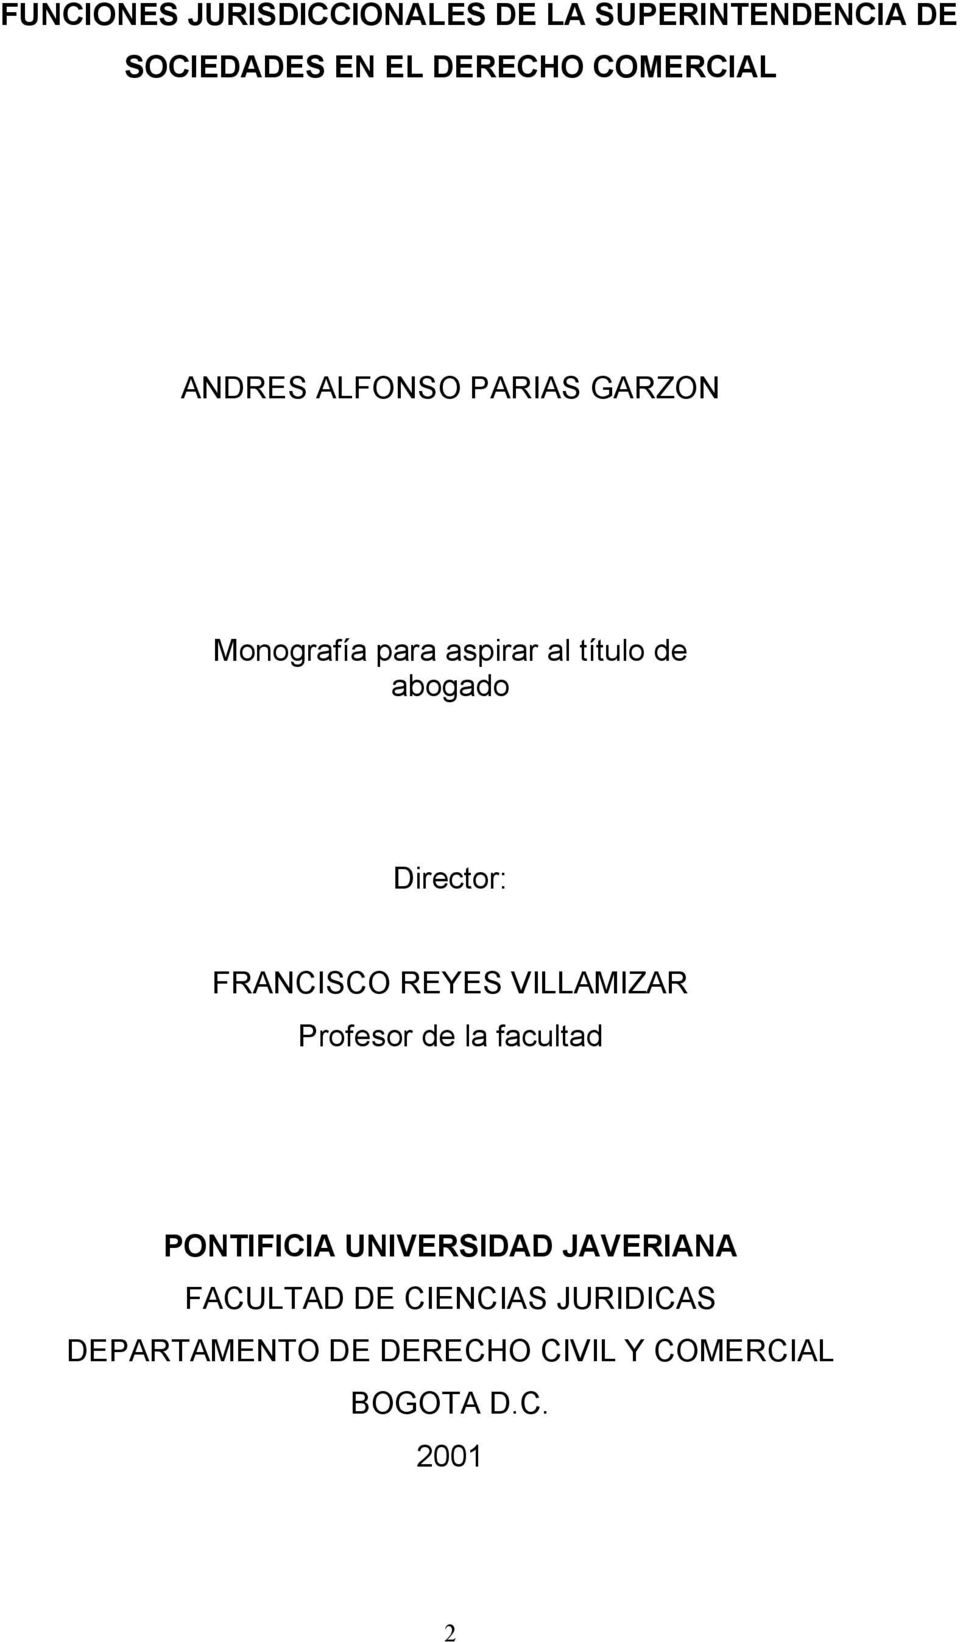 Director: FRANCISCO REYES VILLAMIZAR Profesor de la facultad PONTIFICIA UNIVERSIDAD